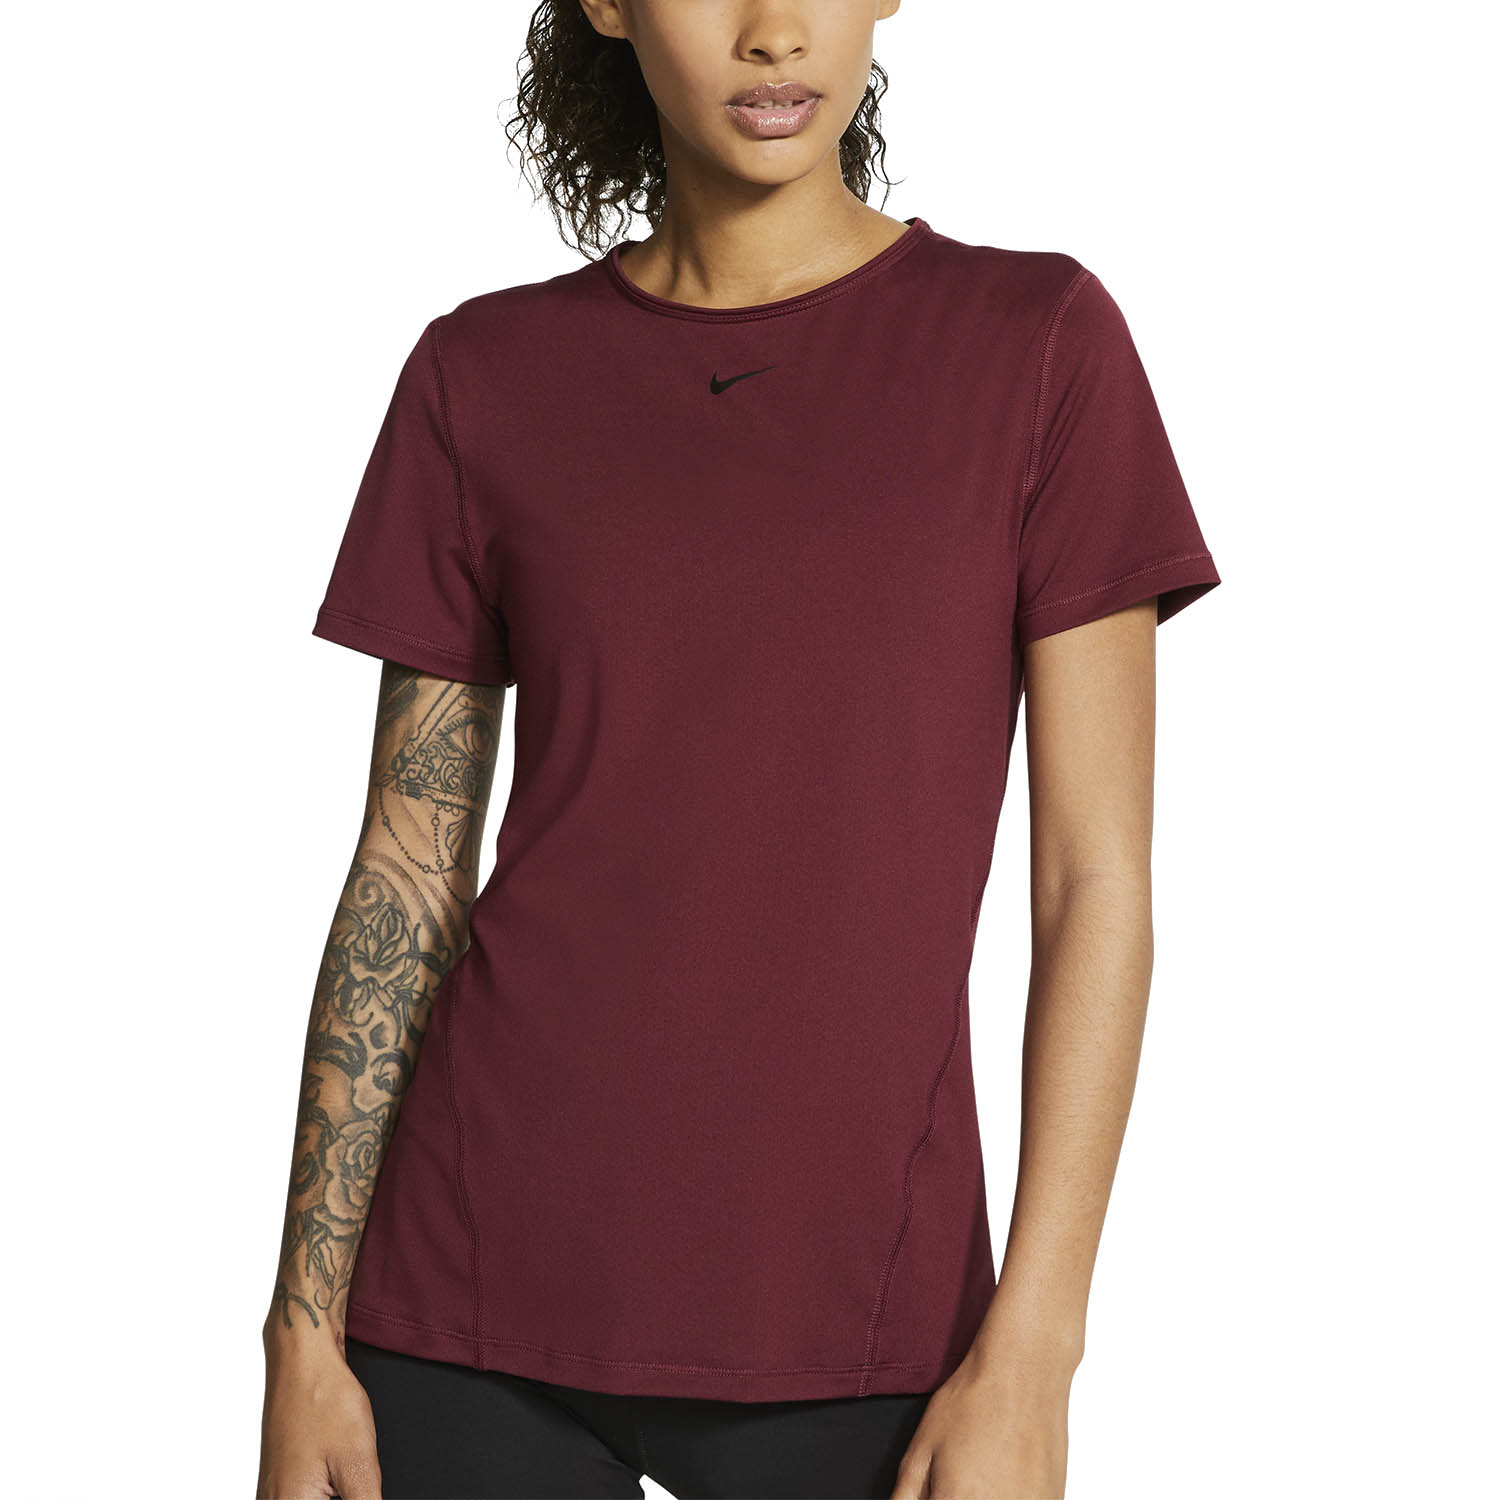 Nike Pro T-Shirt - Dark Beetroot/Black